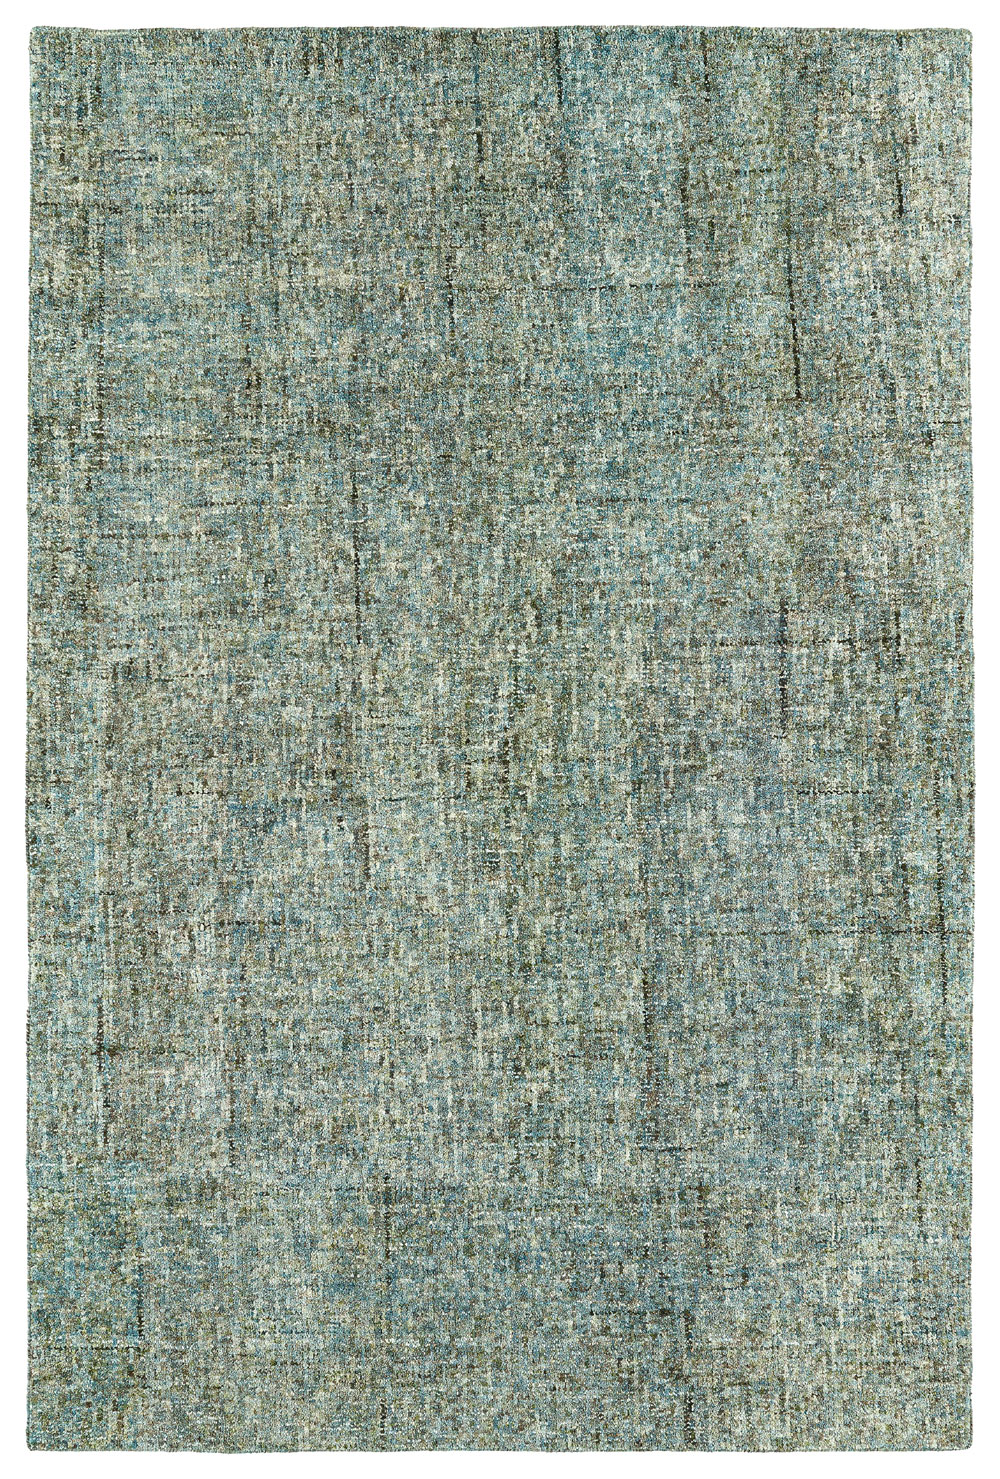 Dalyn Calisa CS5 Seaglass Rug